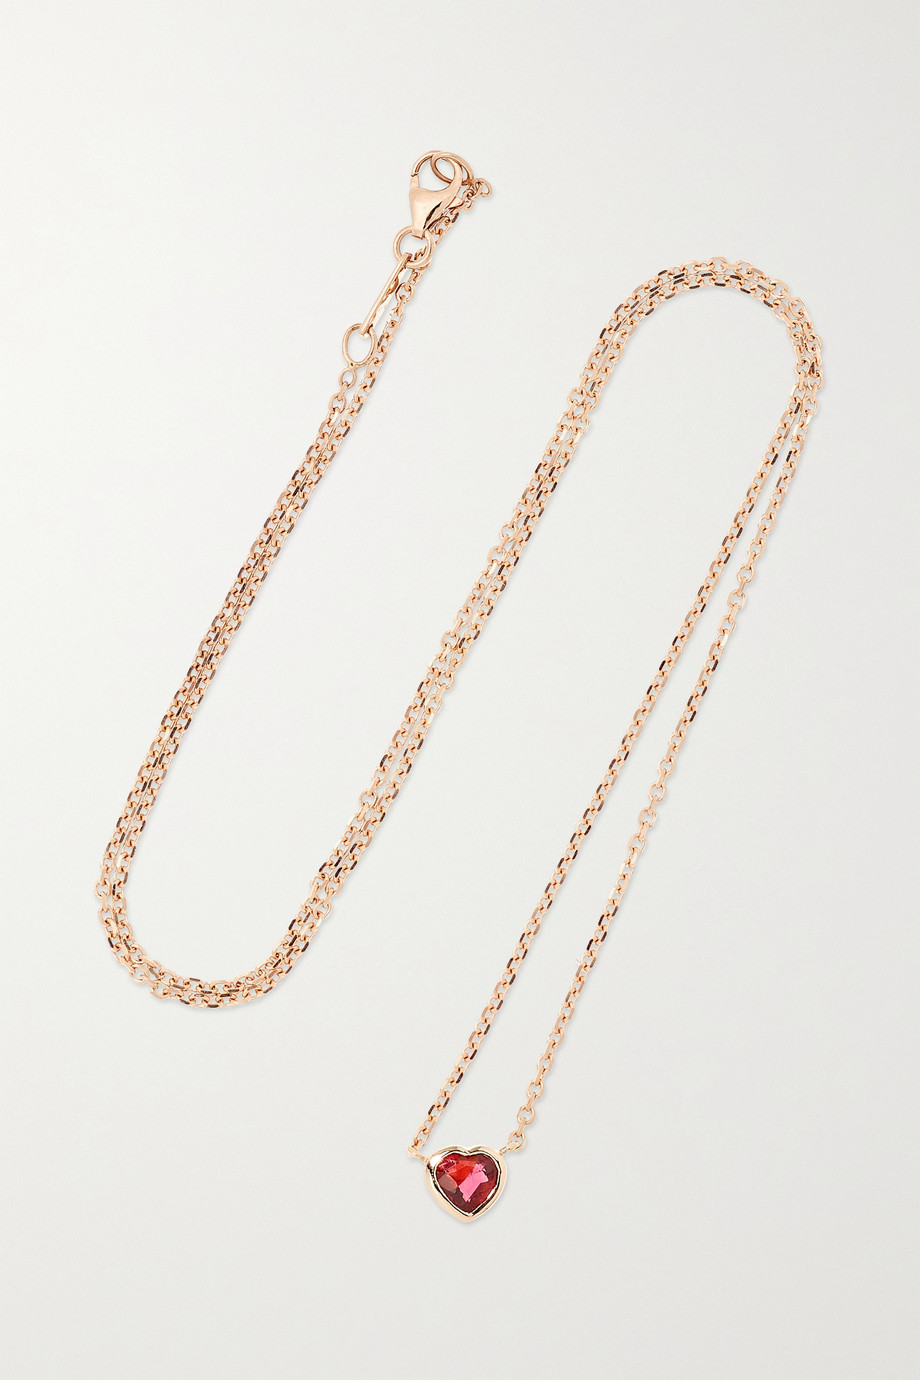 Anita Ko 18-karat rose gold ruby necklace